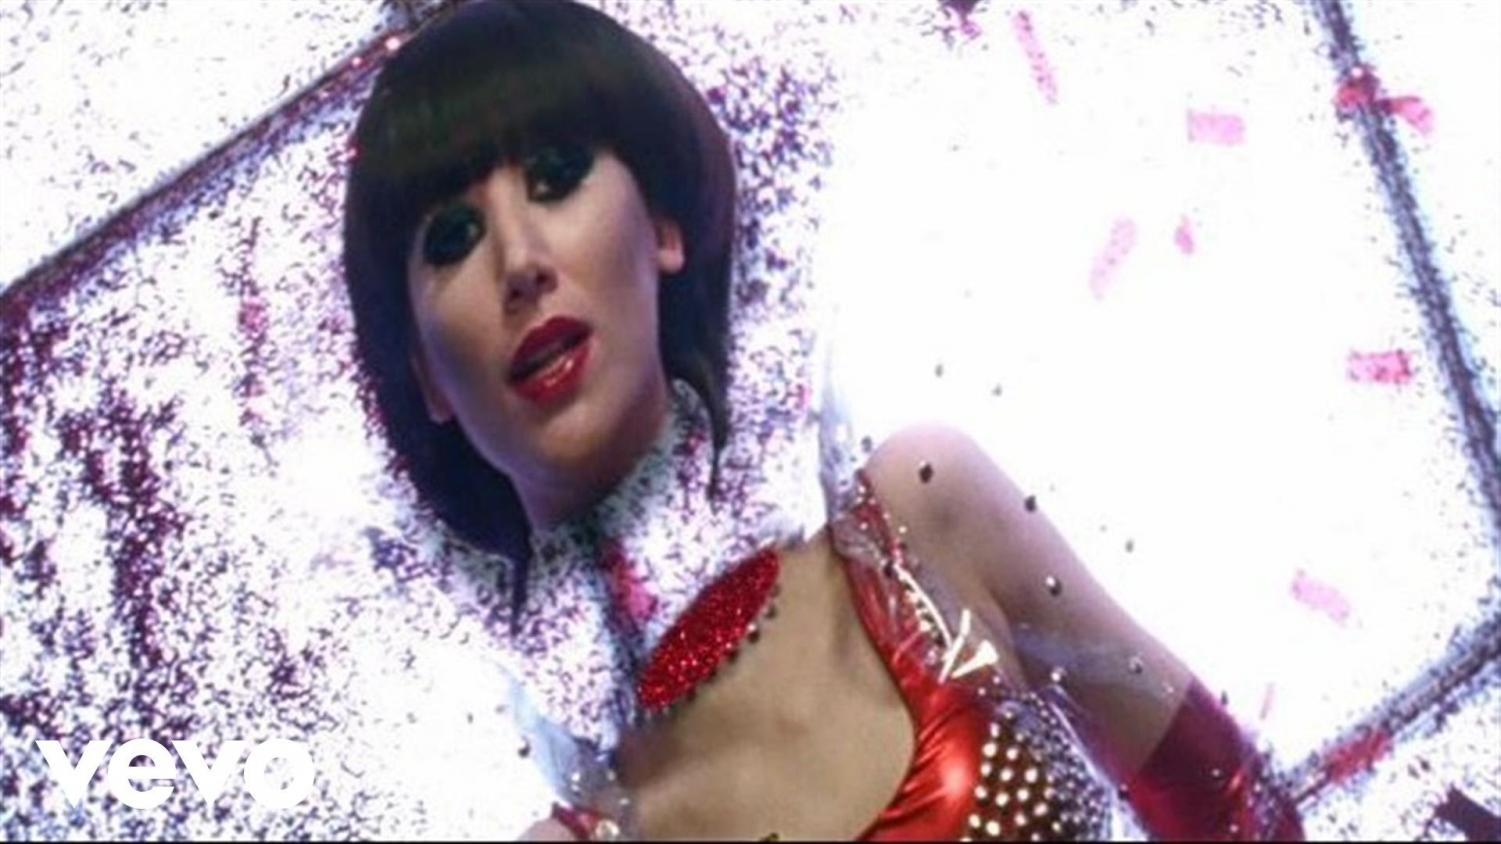 A still from the music video by Yeah Yeah Yeahs performing Heads Will Roll. Image from Polydor Ltd.